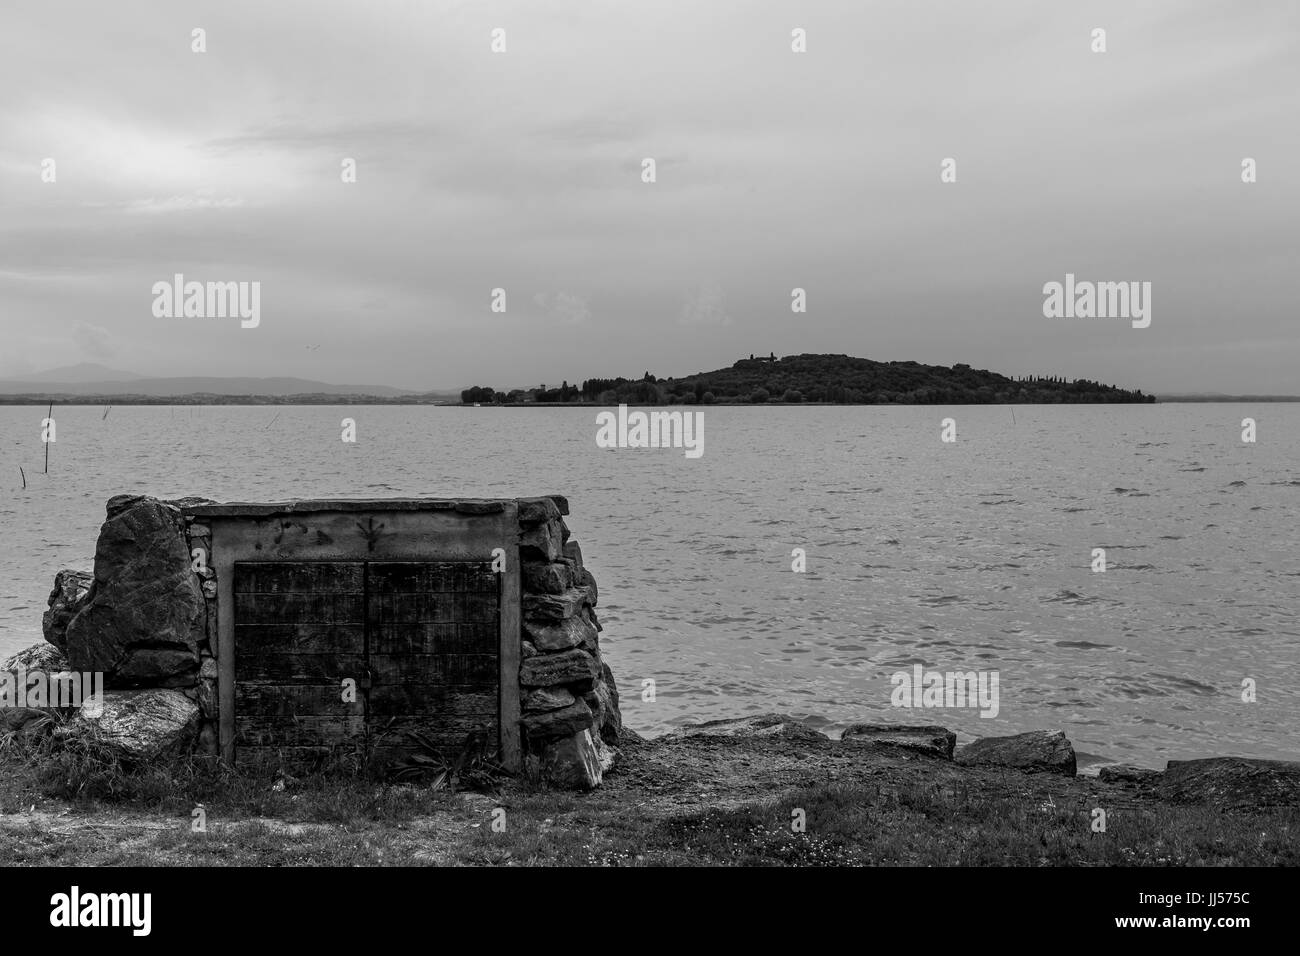 A lake shore with a closet built with some stones - Stock Image